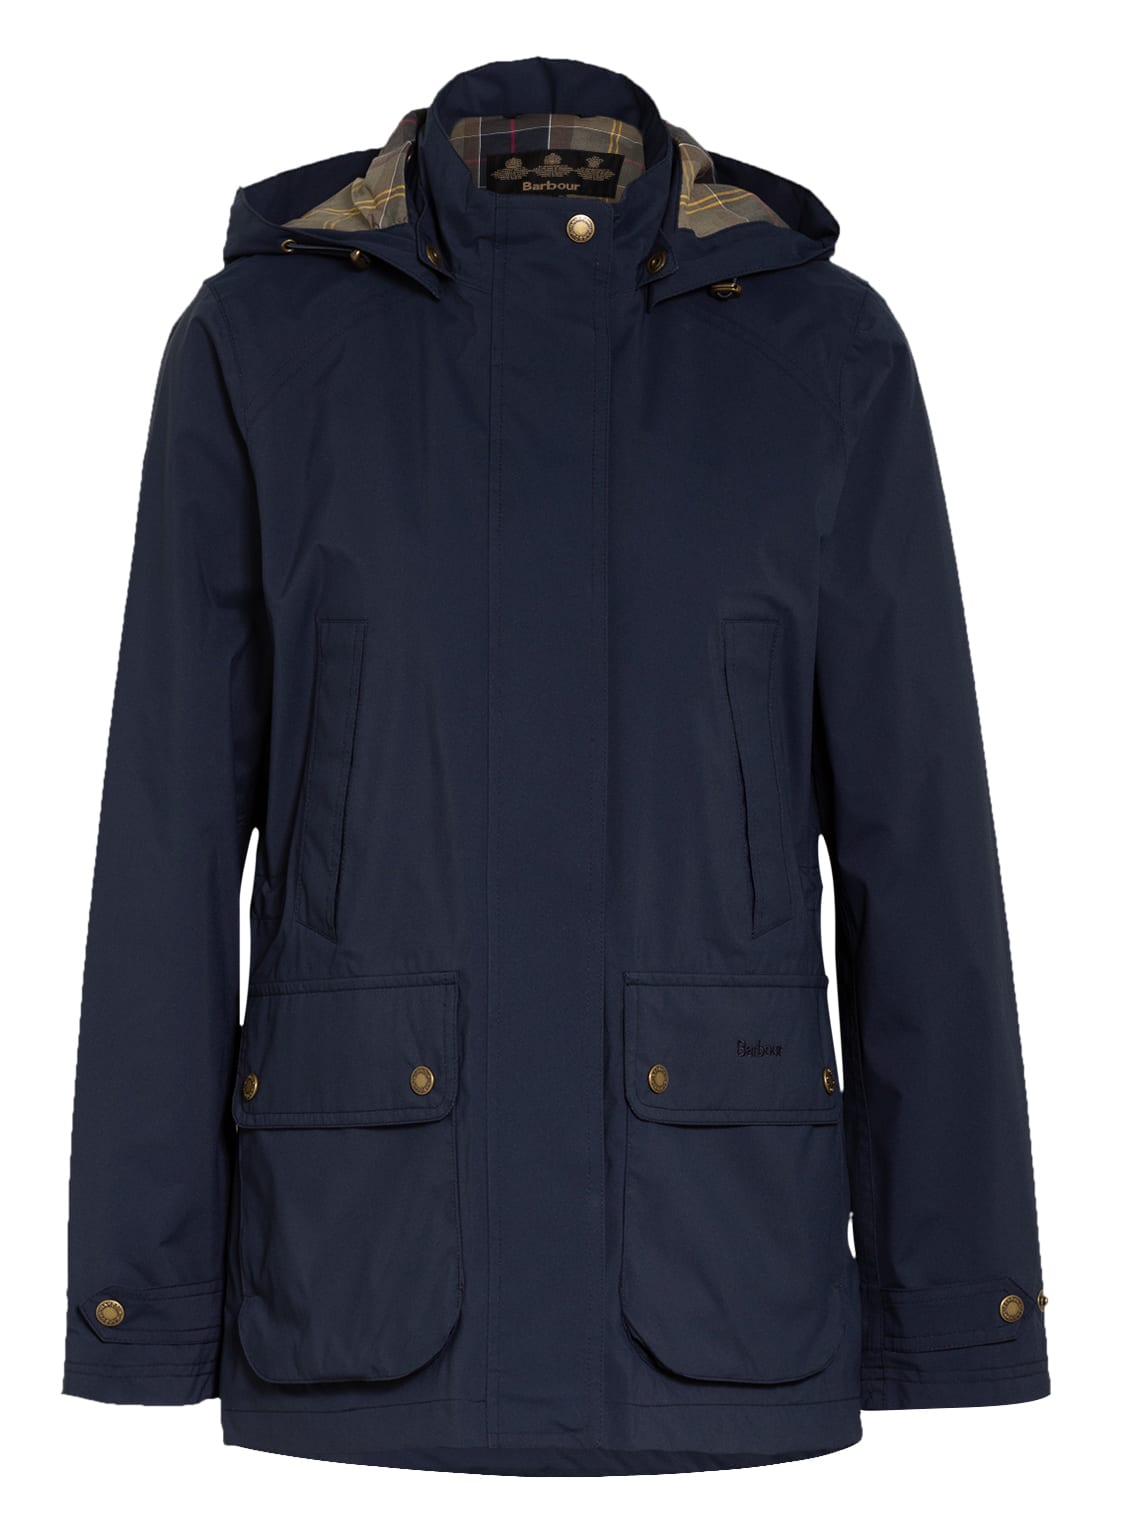 Image of Barbour Fieldjacket Clyde Mit Abnehmbarer Kapuze blau